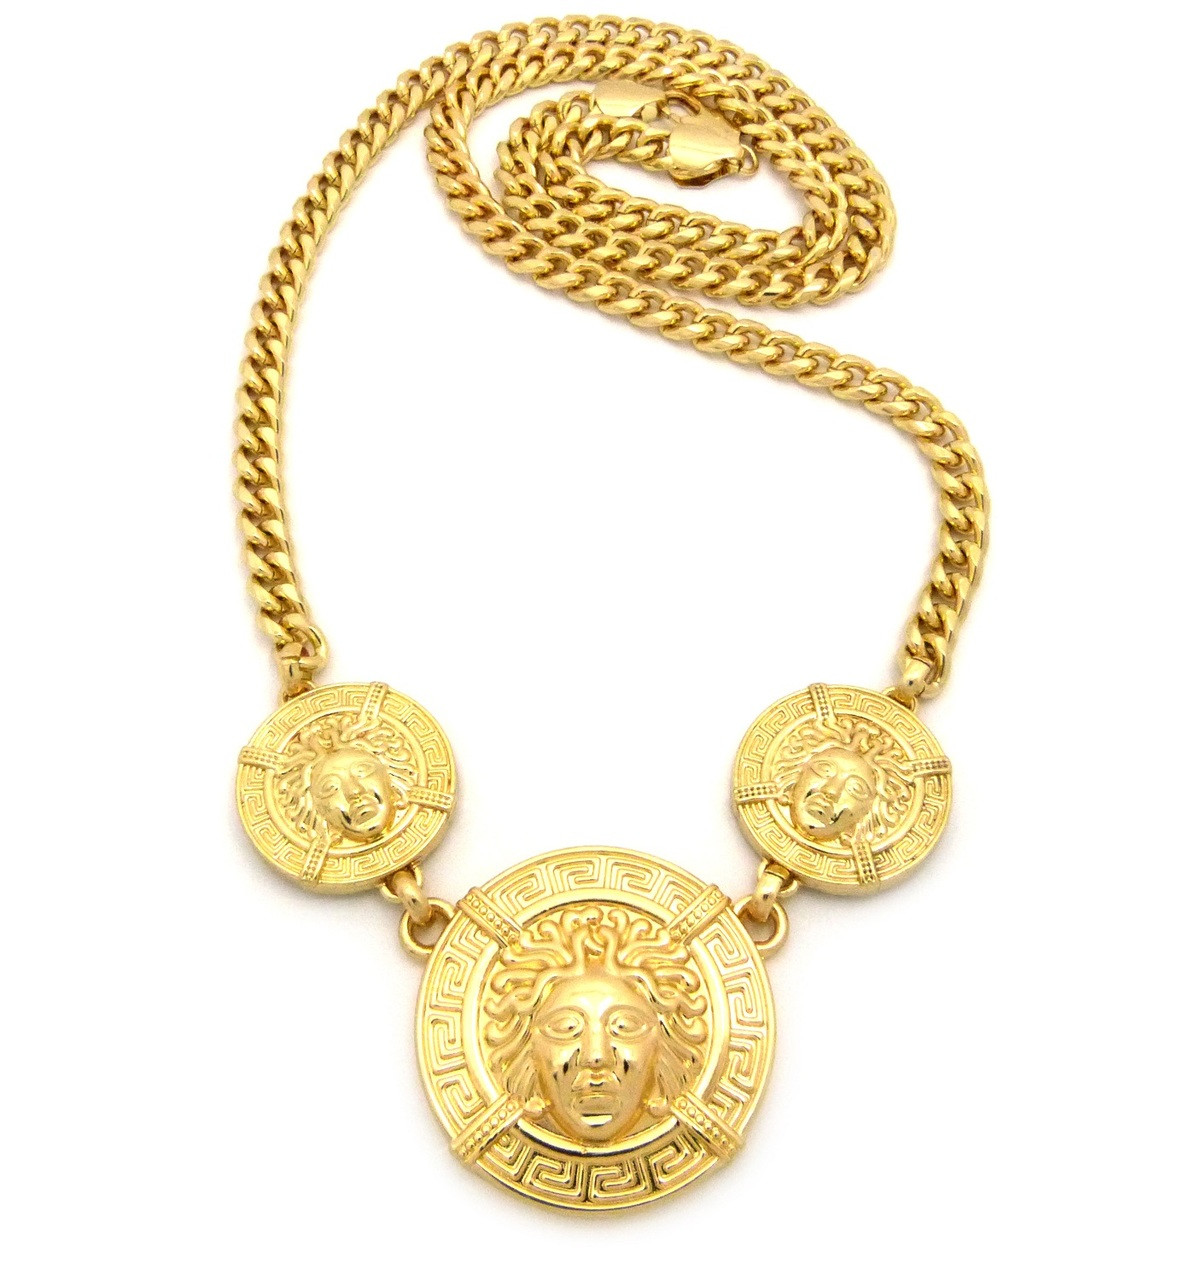 dp gold god necklace medallion inch link mens com pendant greek cuban amazon jewelry rapper chain